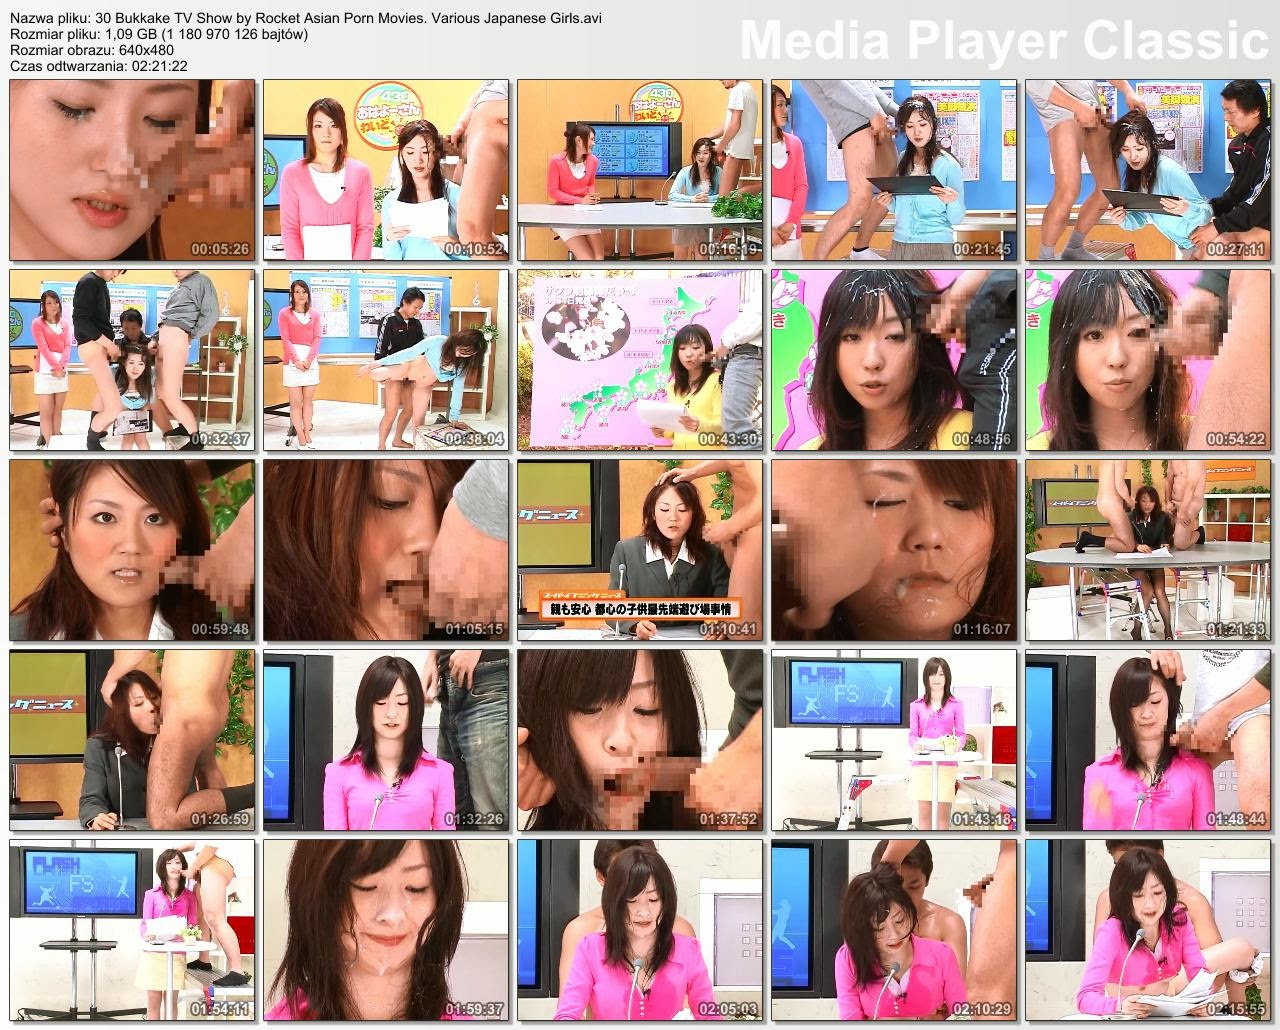 30 Bukkake TV Show by Rocket Asian Porn Movies. .